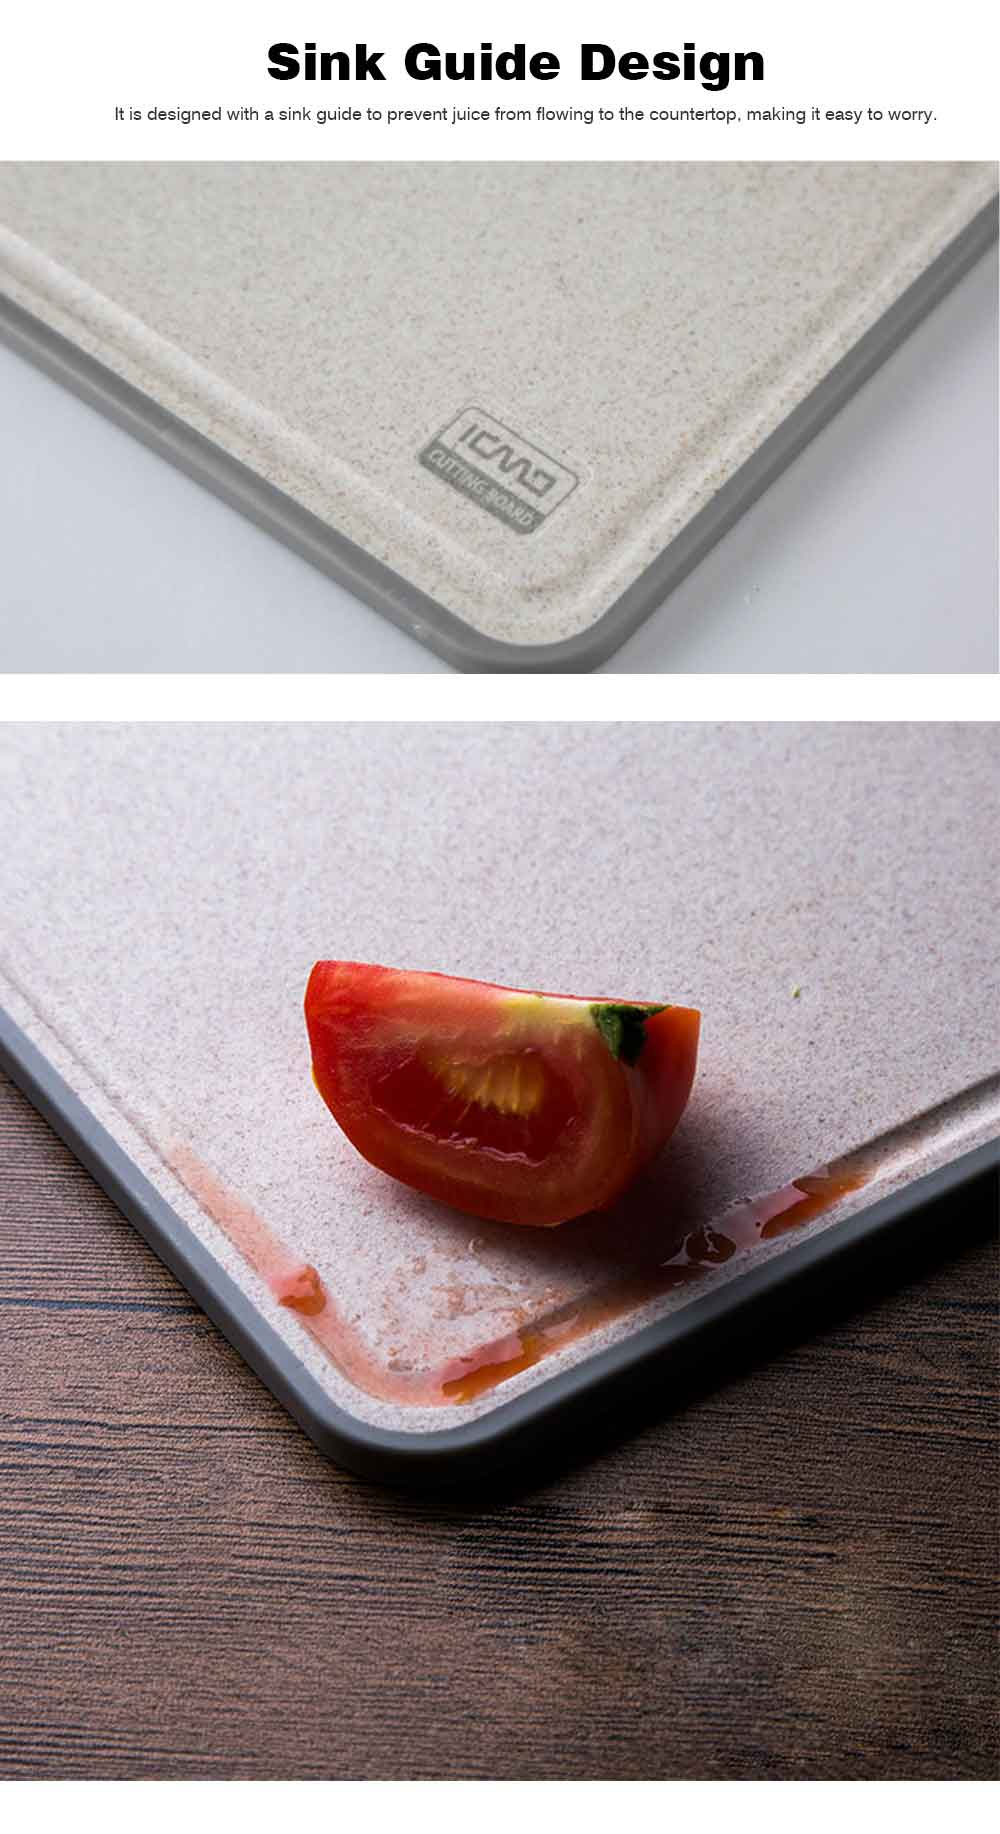 Curved Grain Fiber Chopping Board, Non-slip Cutting Board with L-shaped Handle Design 4